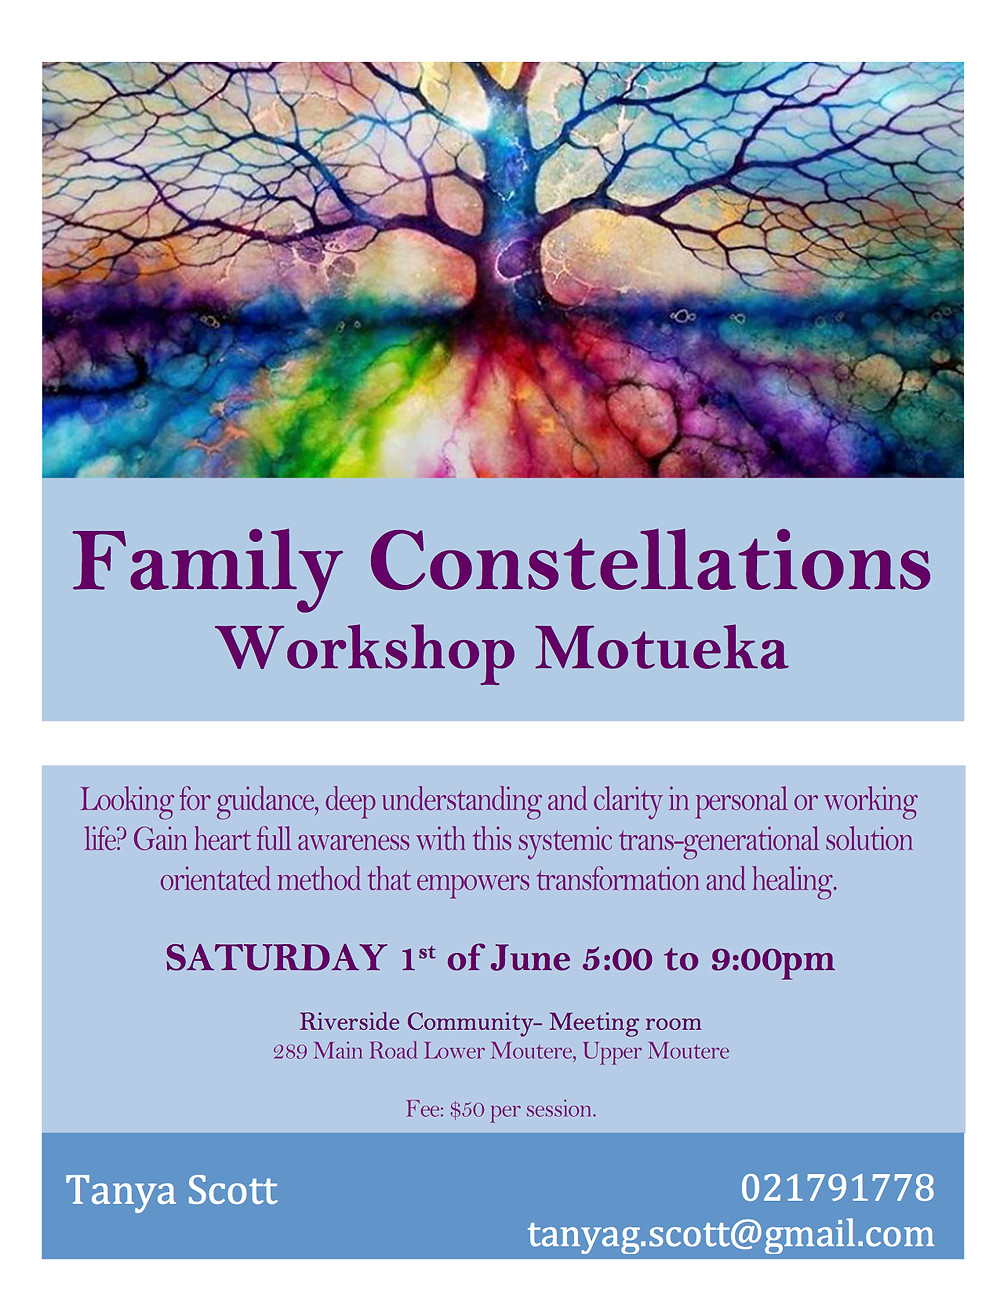 Family Constellations colorful Tree